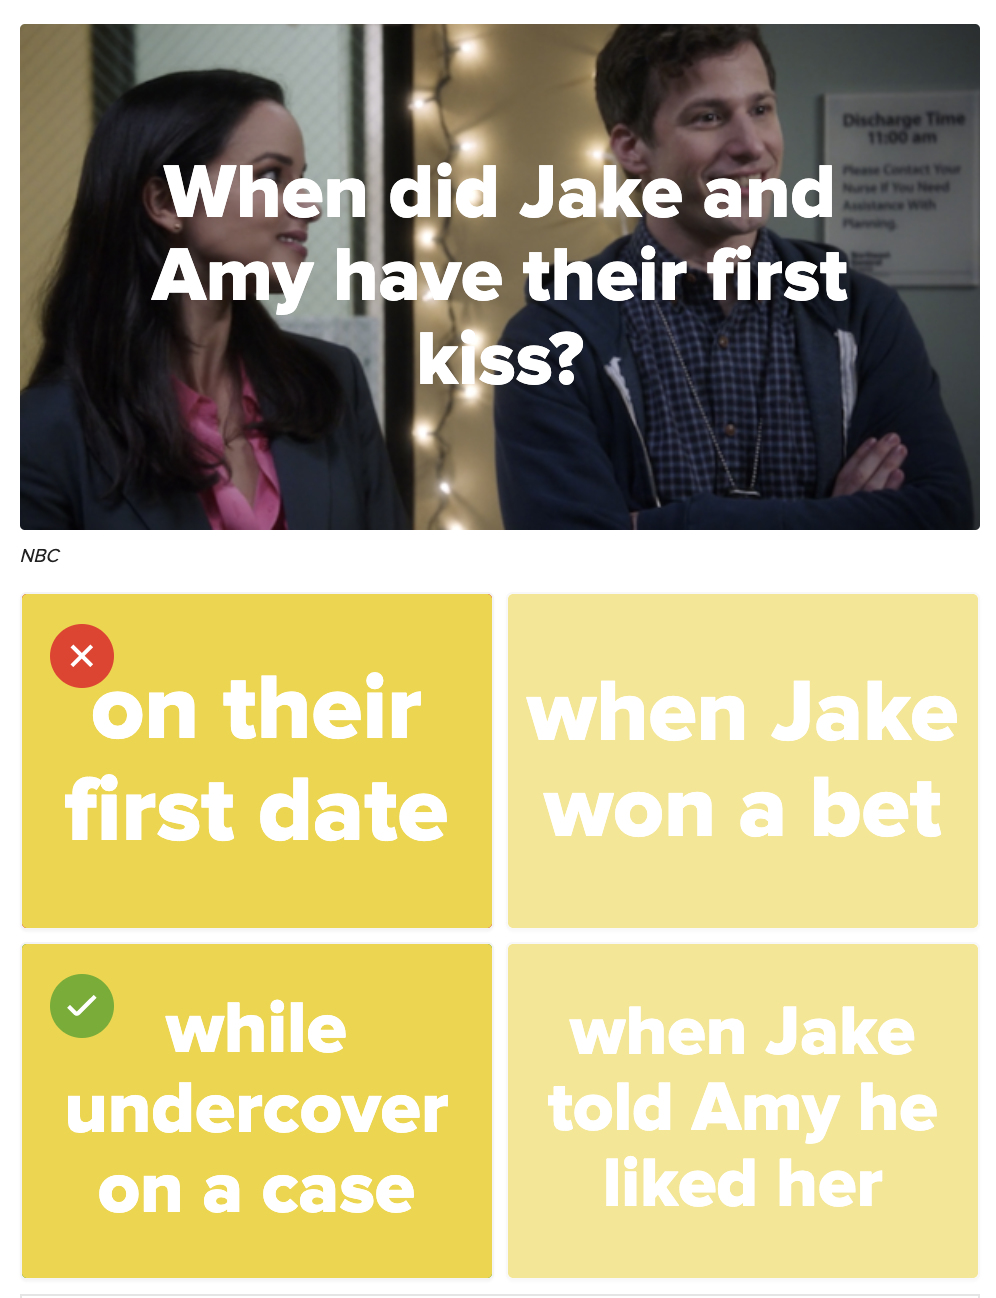 Question: When did Jake and Amy have their first kiss?